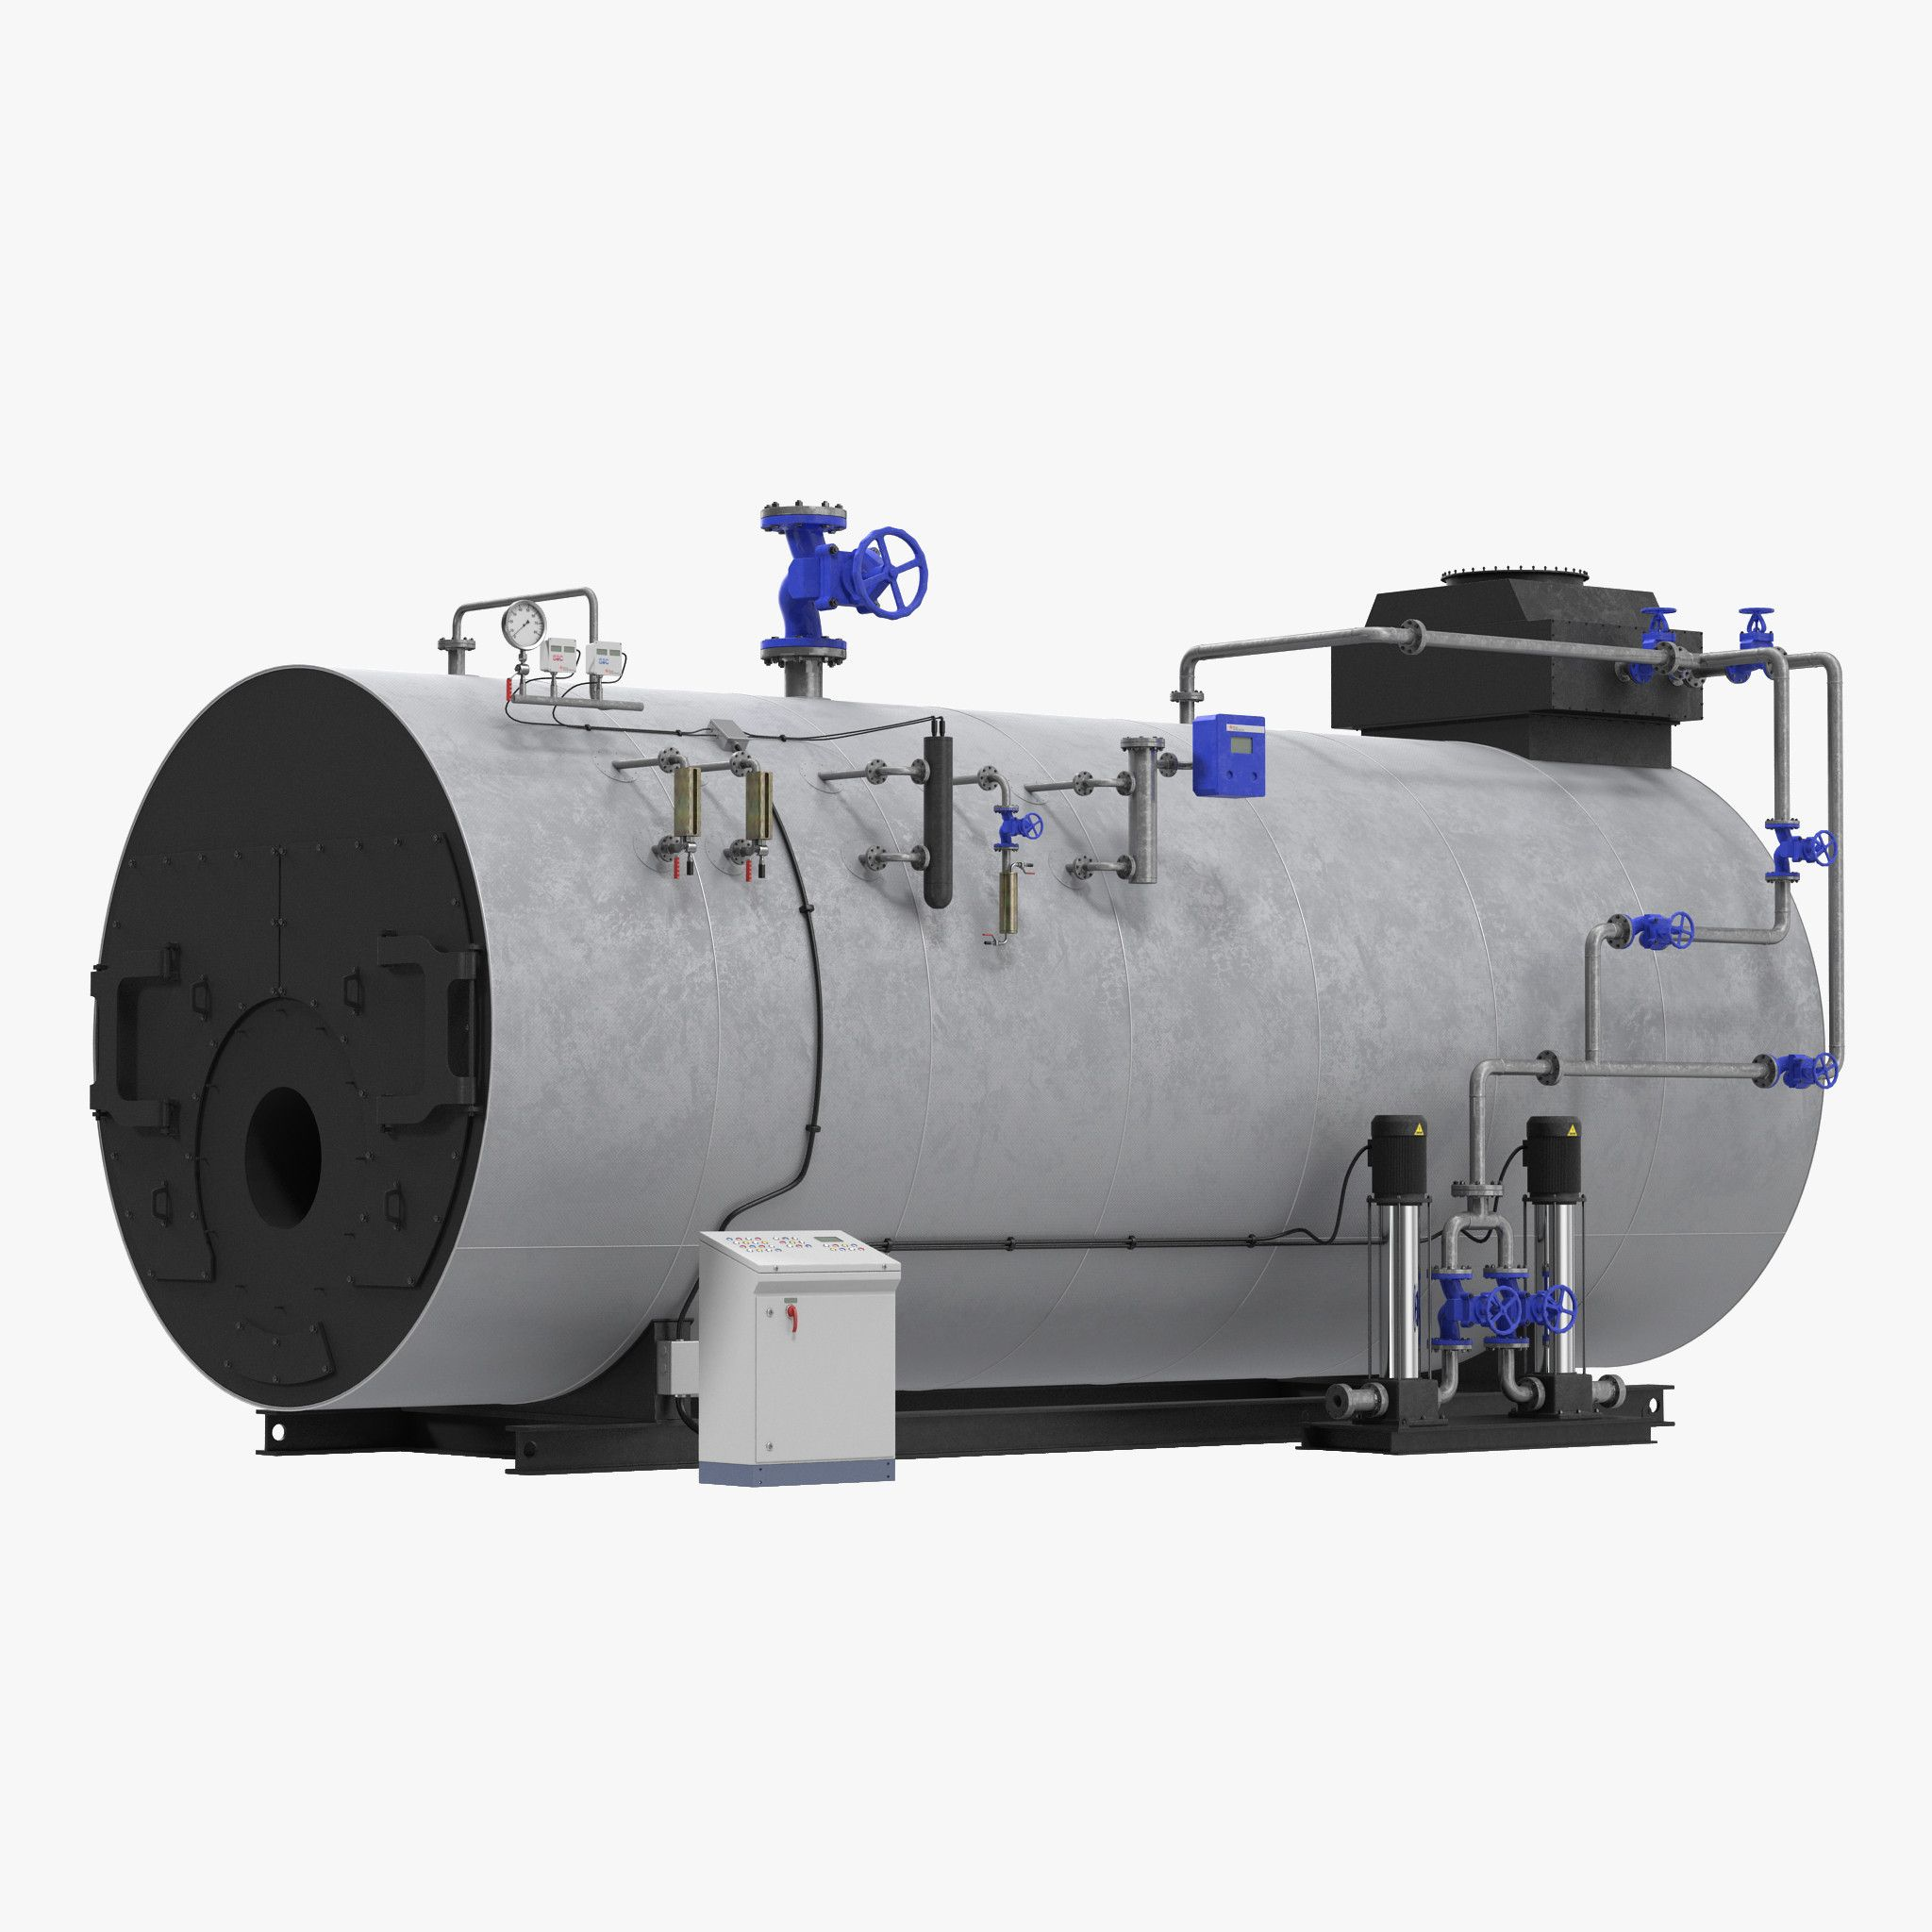 Industrial Gas Steam Generator 3D Model 3D Model